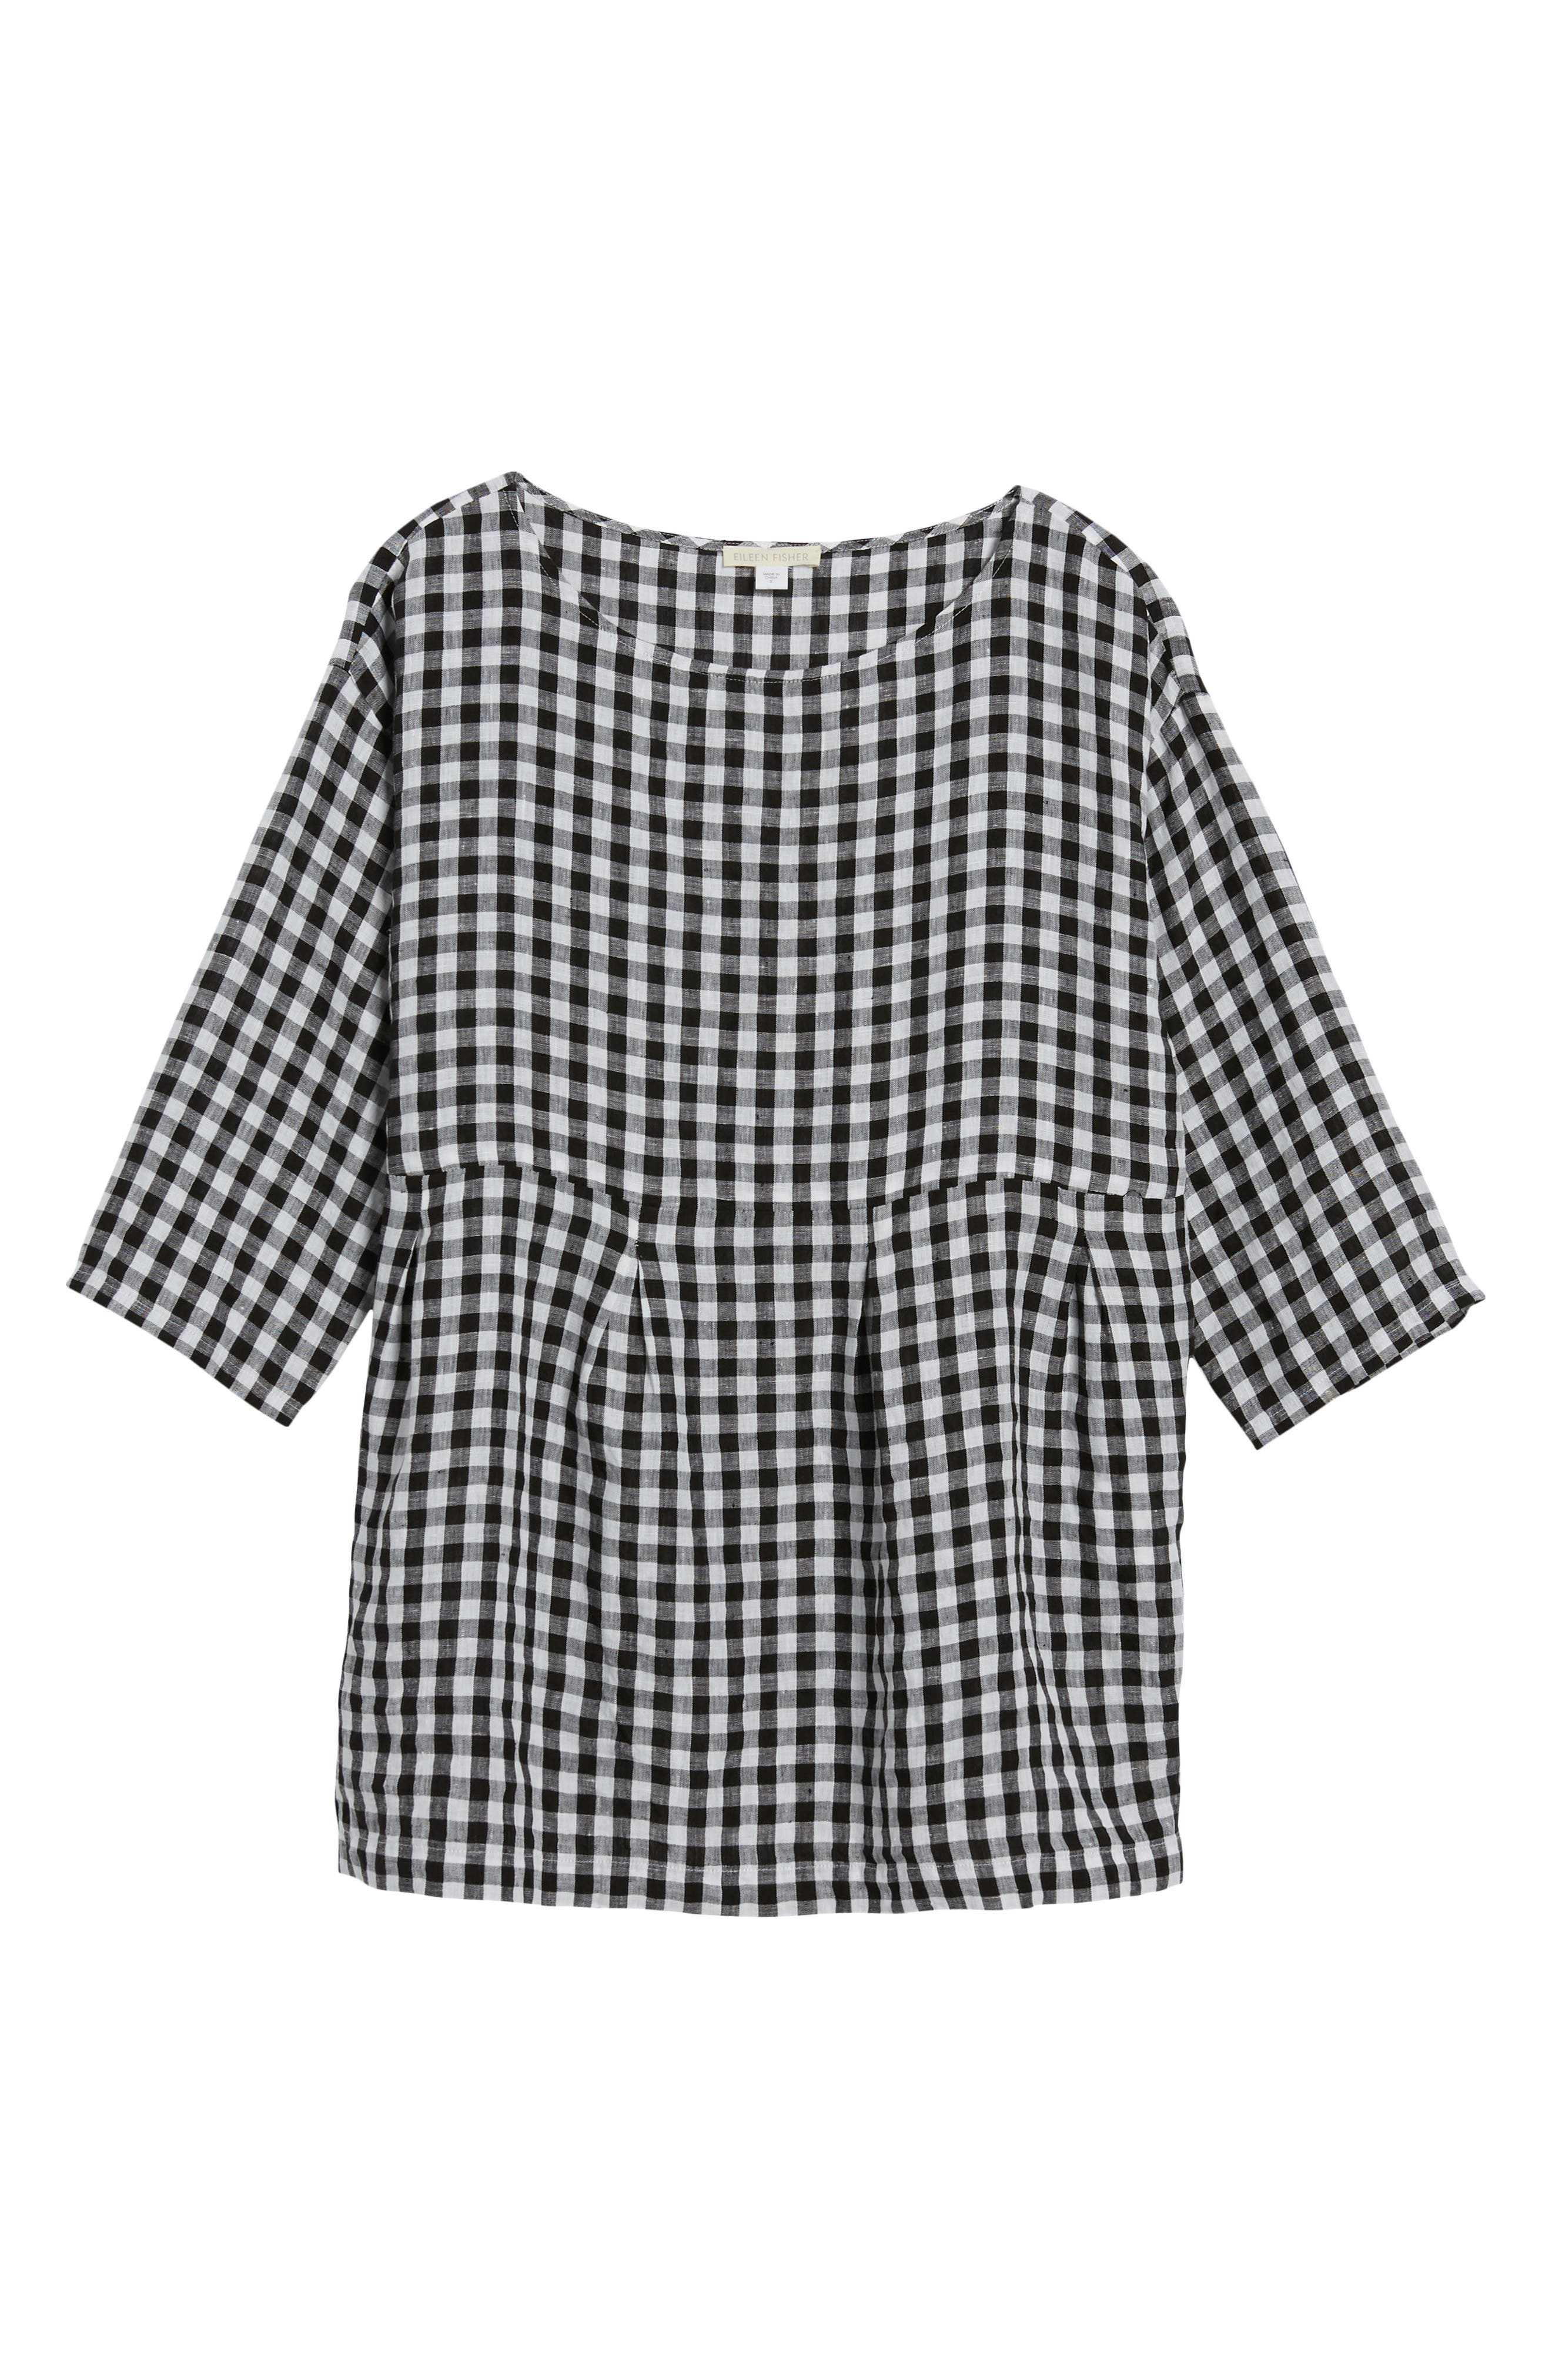 Gingham Organic Linen Top,                             Alternate thumbnail 7, color,                             018